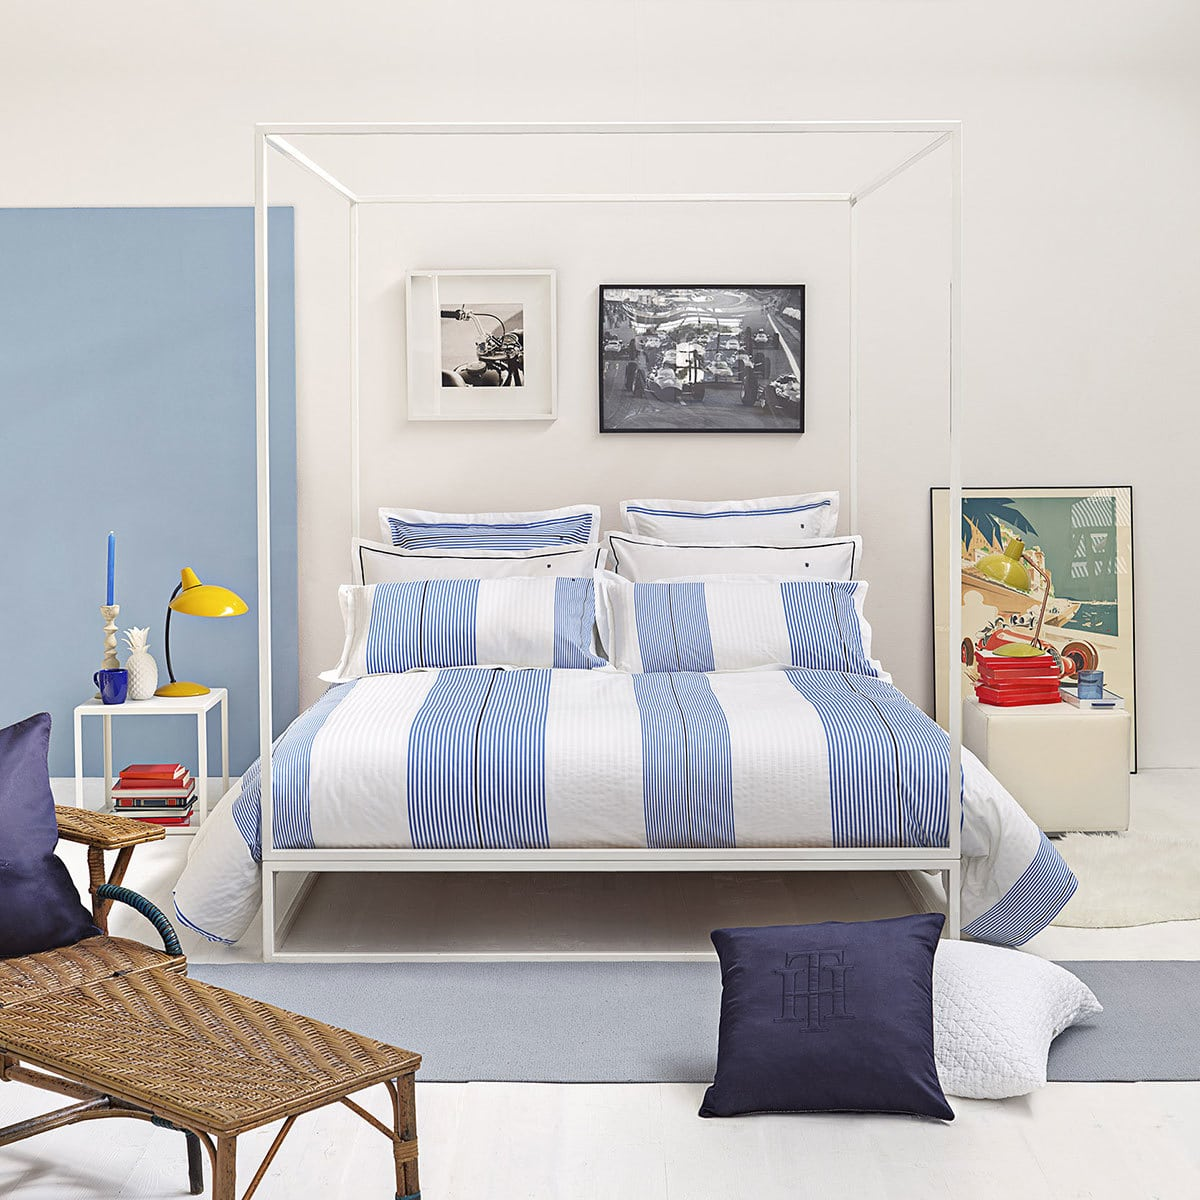 tommy hilfiger perkal bettw sche wei und blau gestreift g nstig online kaufen bei bettwaren shop. Black Bedroom Furniture Sets. Home Design Ideas